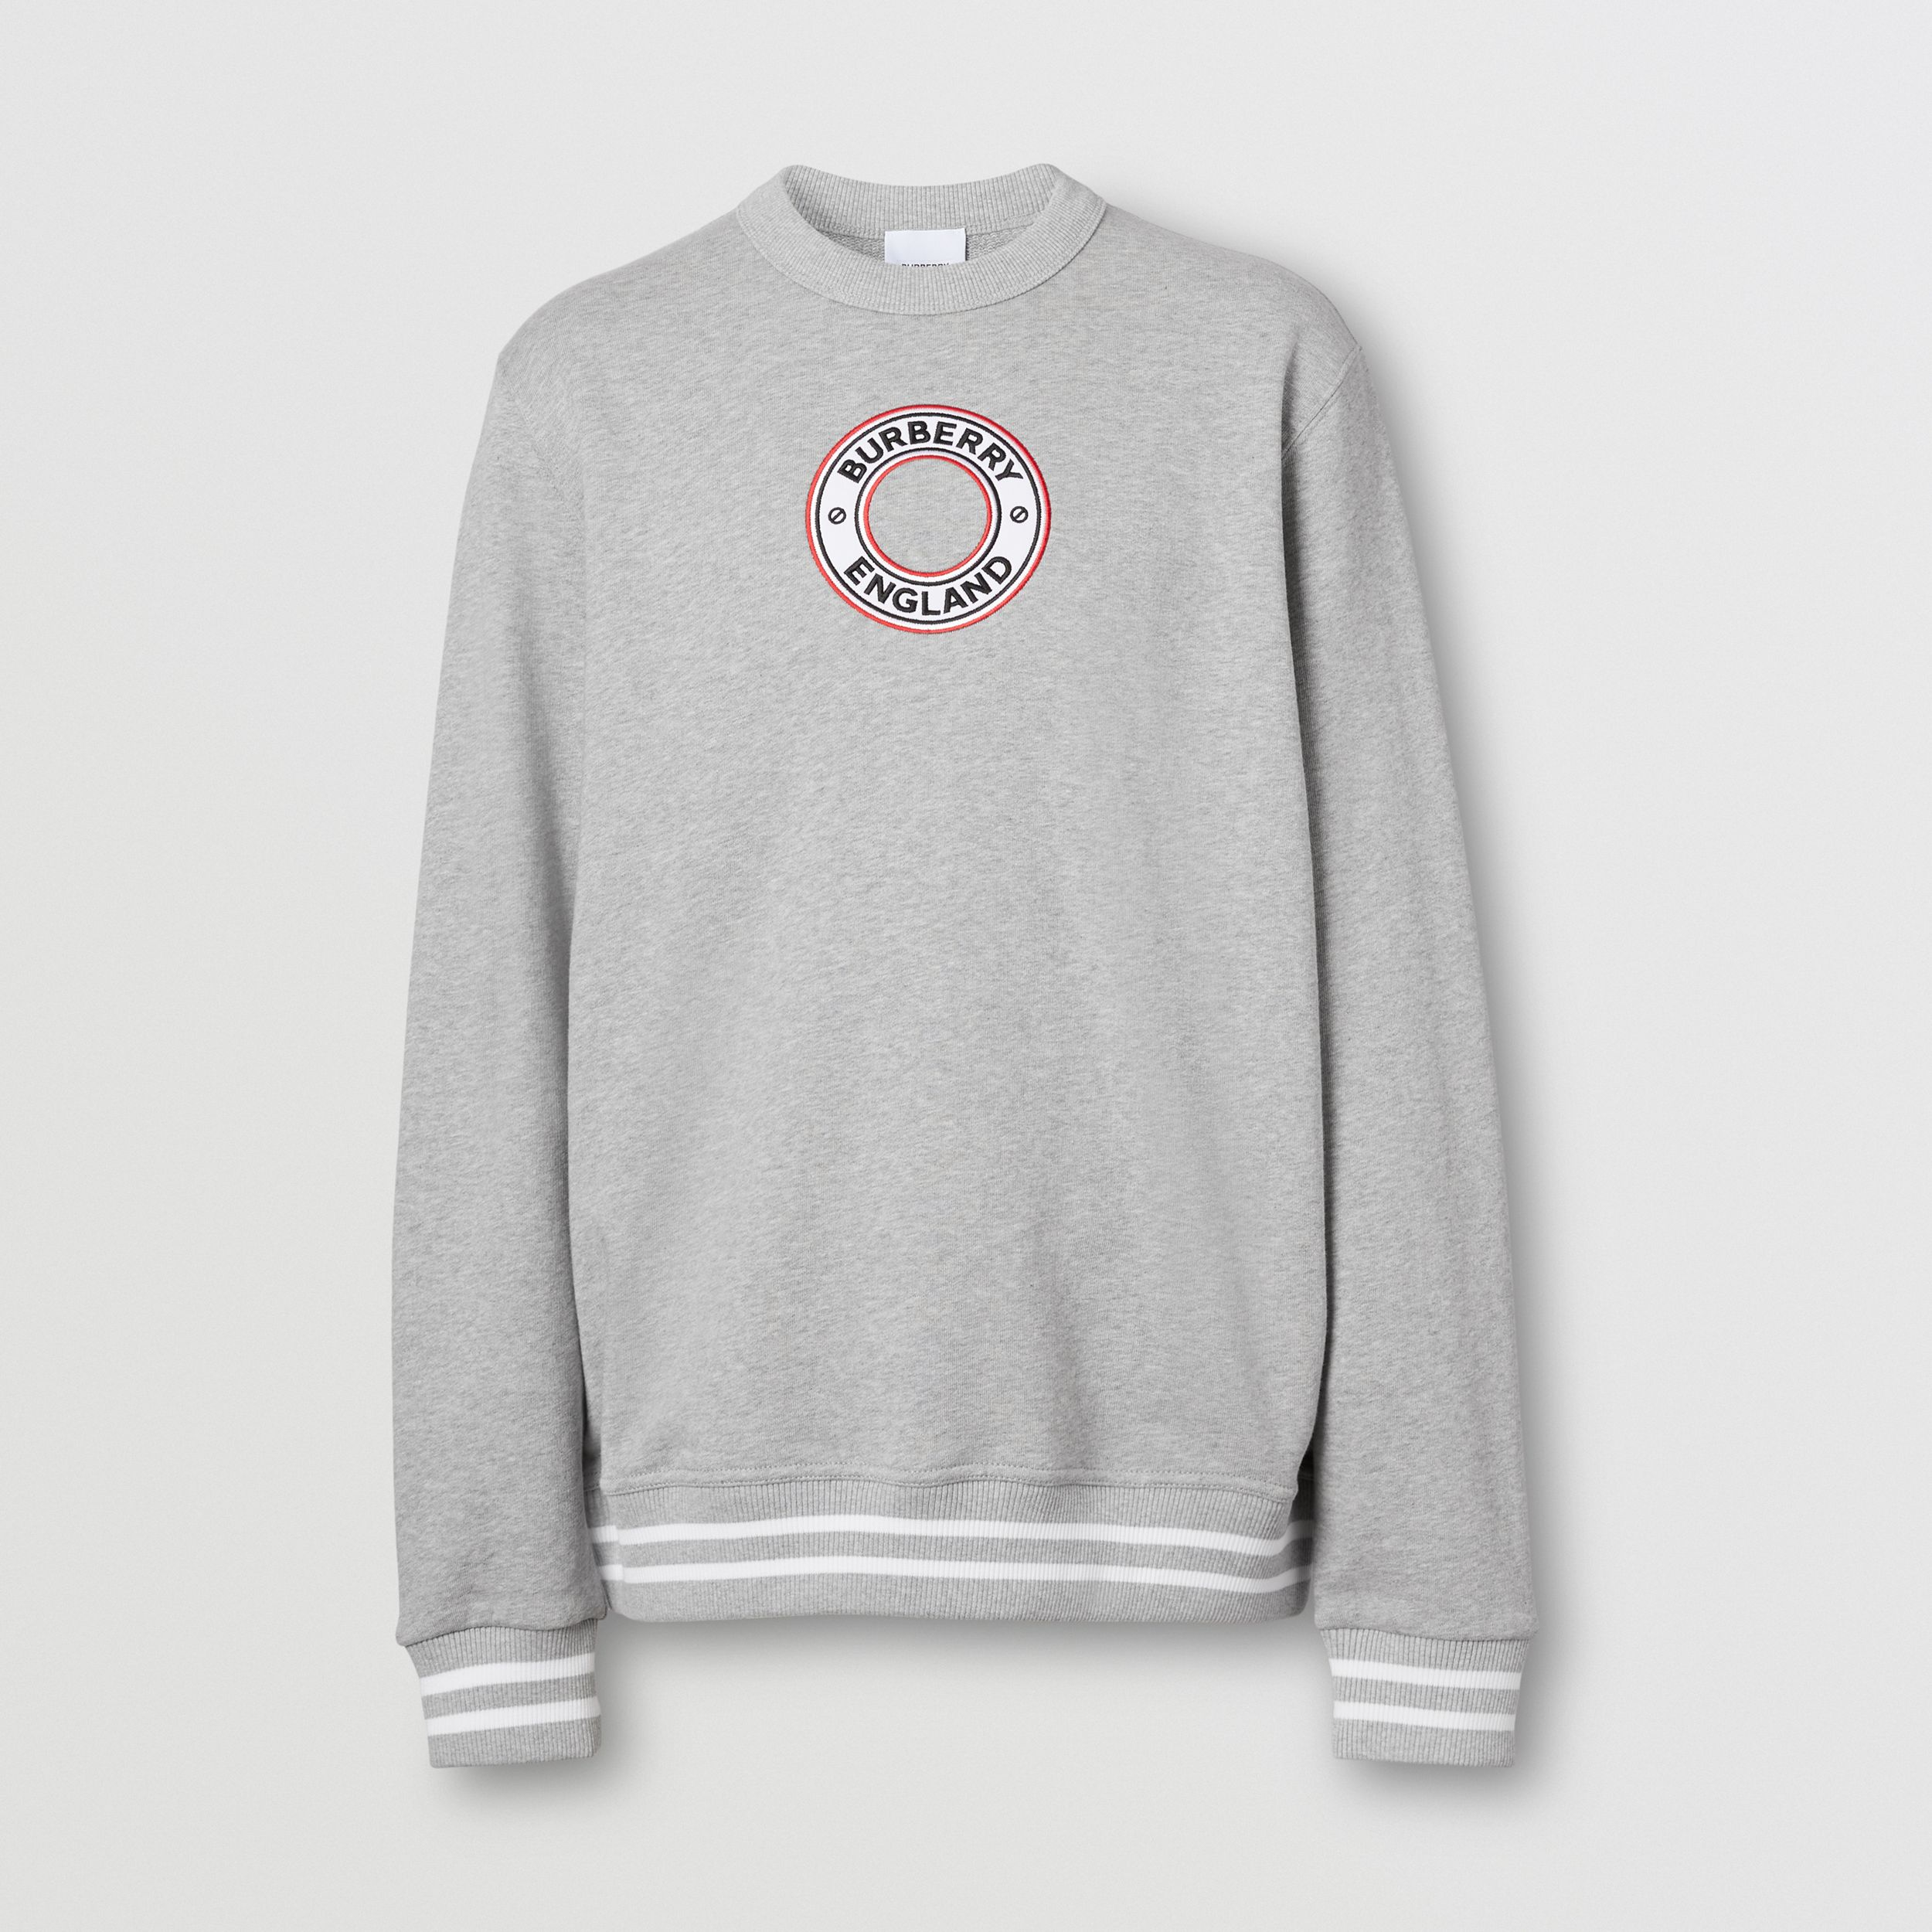 Logo Graphic Appliqué Cotton Sweatshirt in Pale Grey Melange - Men | Burberry - 4